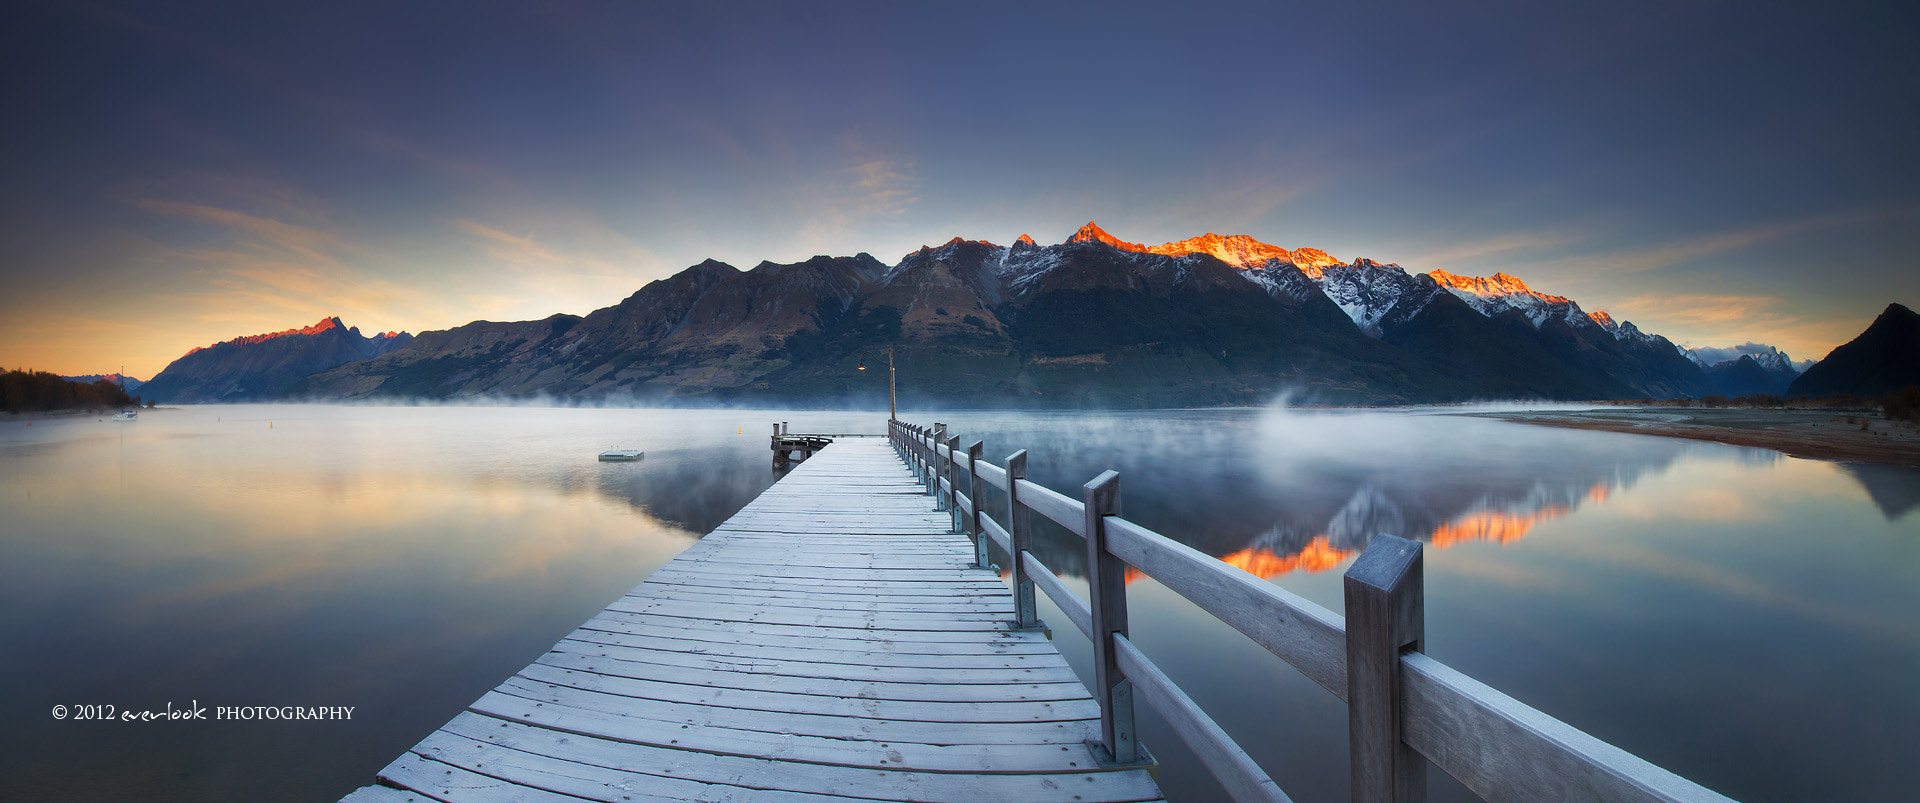 Photograph Thaw by Dylan Toh  & Marianne Lim on 500px